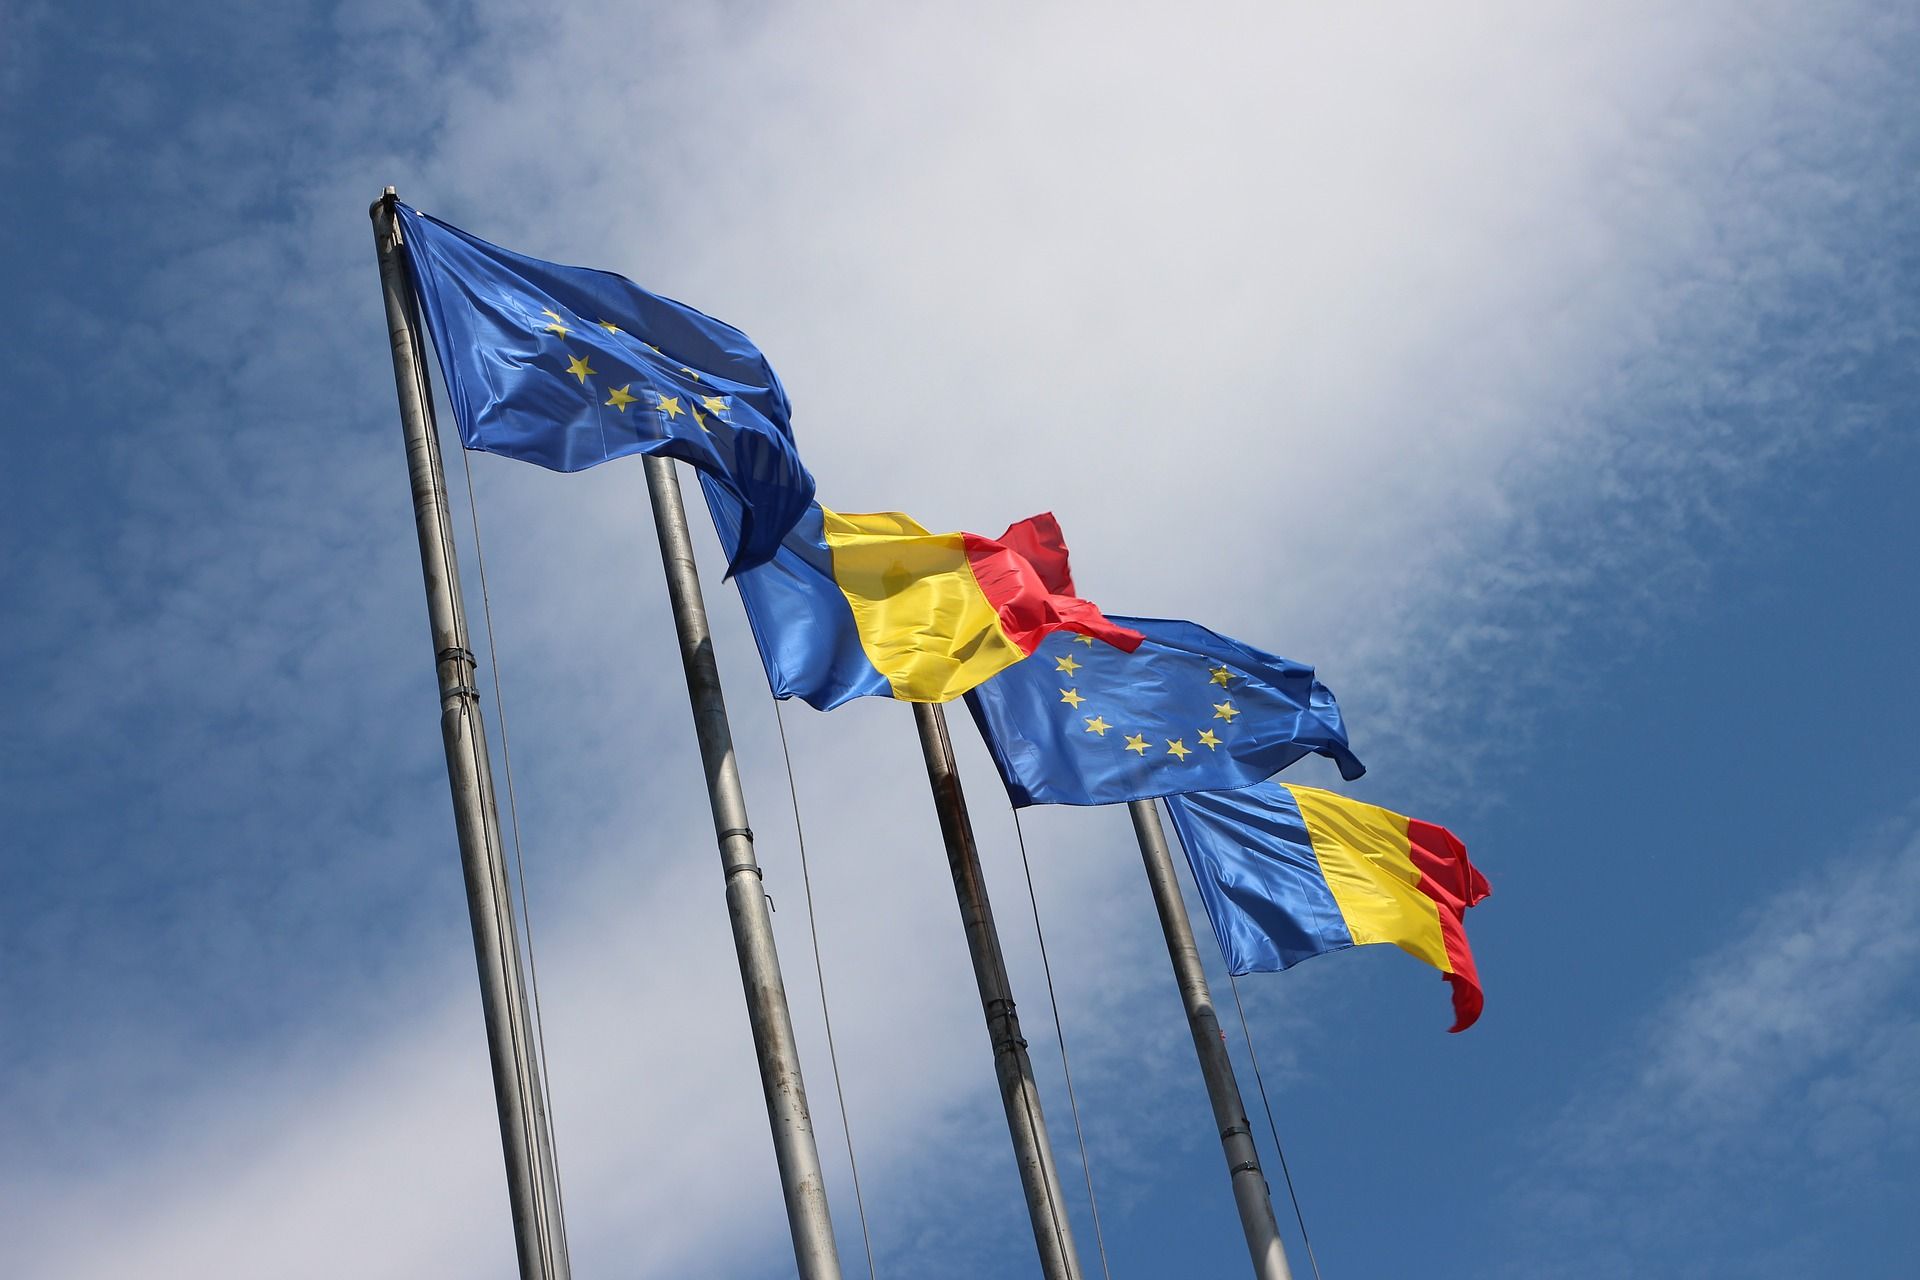 Romania and EU flags